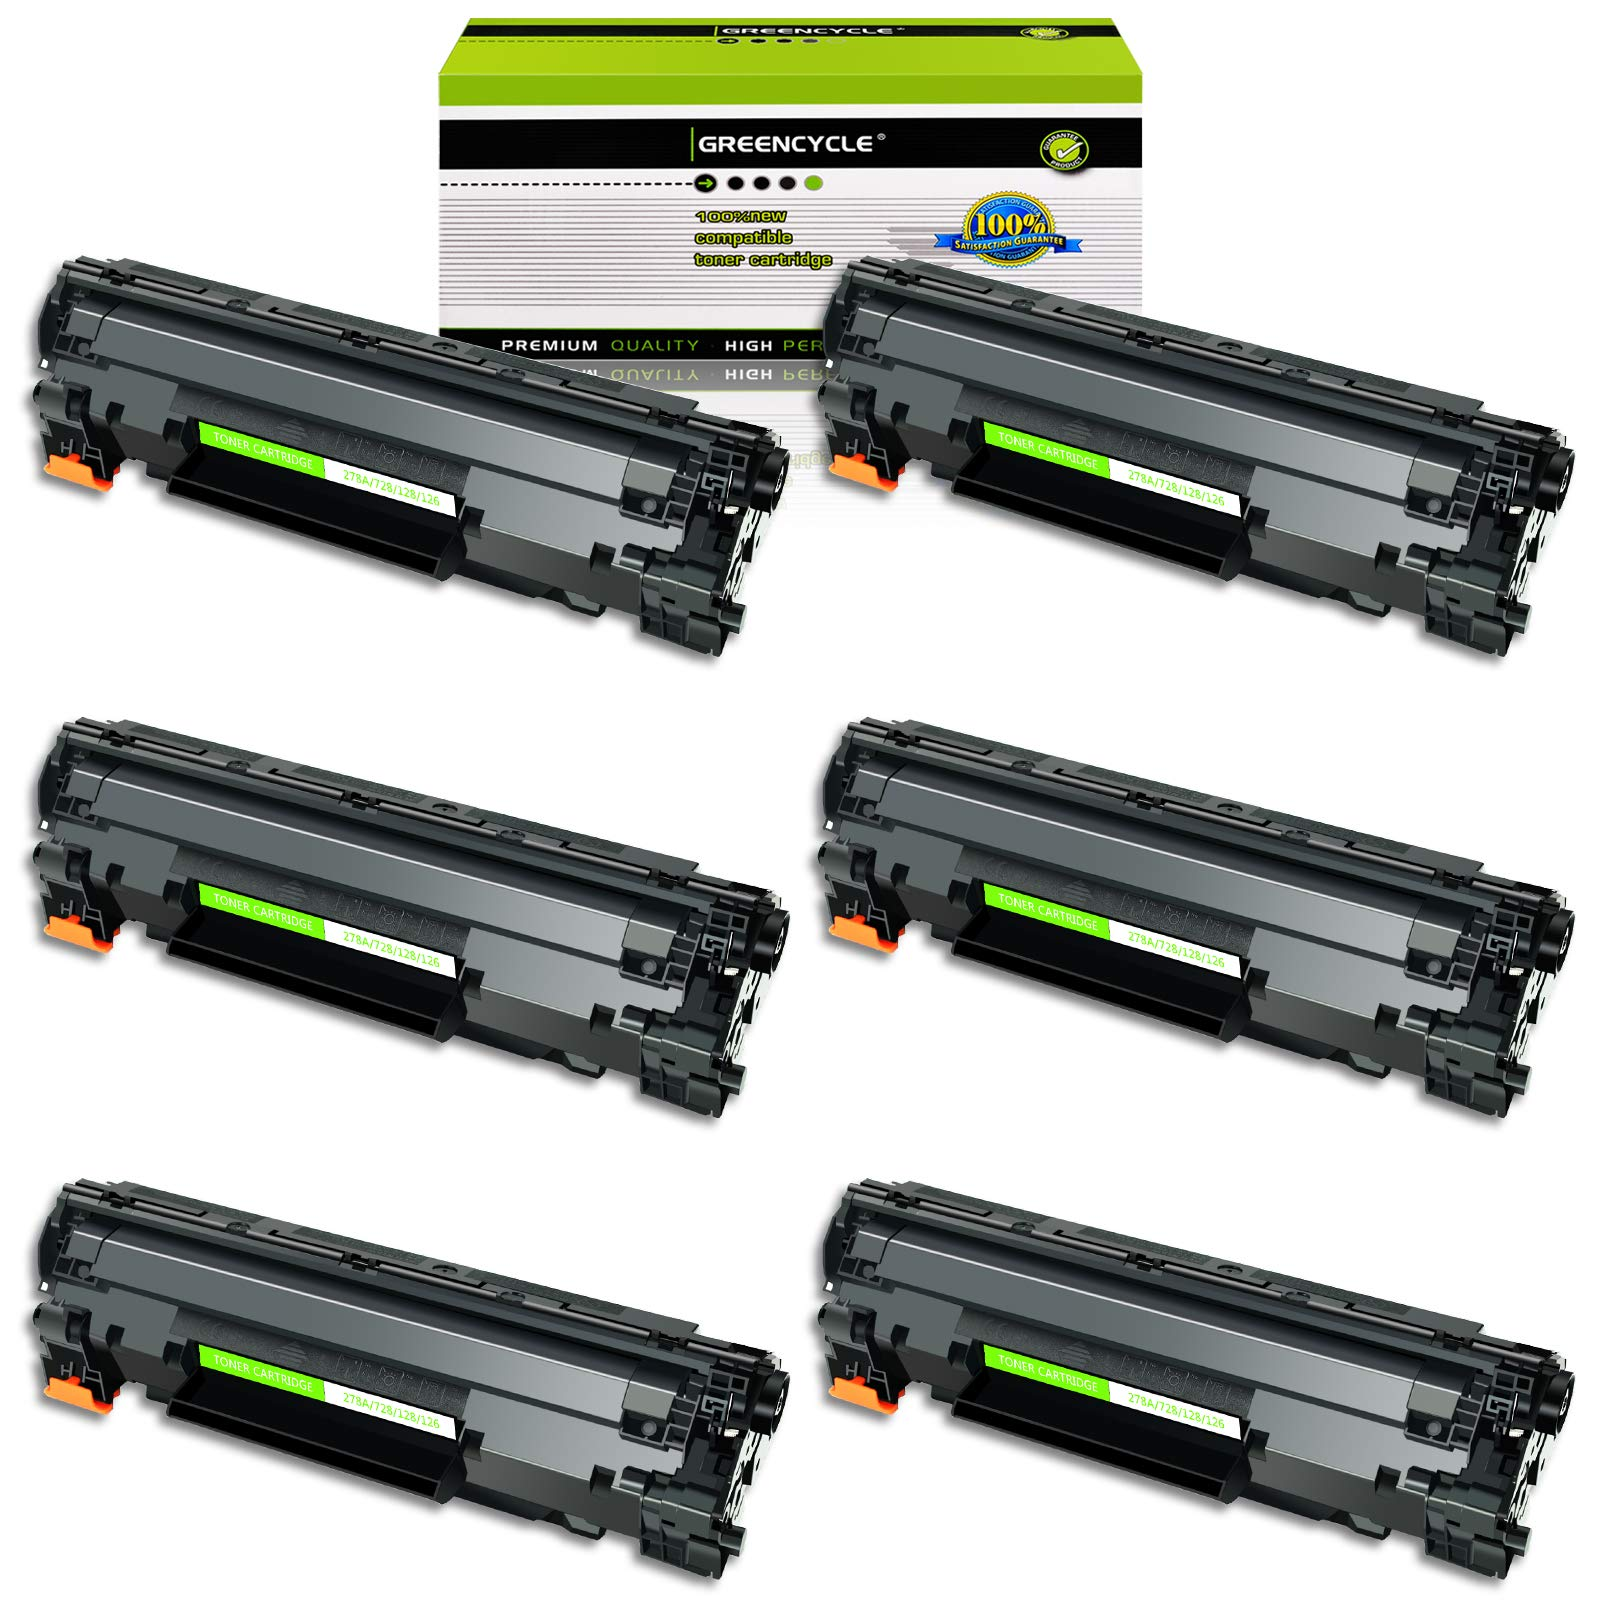 GREENCYCLE 6 Pack 78A CE278A Black Laser Toner Cartridge Compatible for Laserjet Pro P1606dn P1566 P1560 M1536dnf P1600 Printer